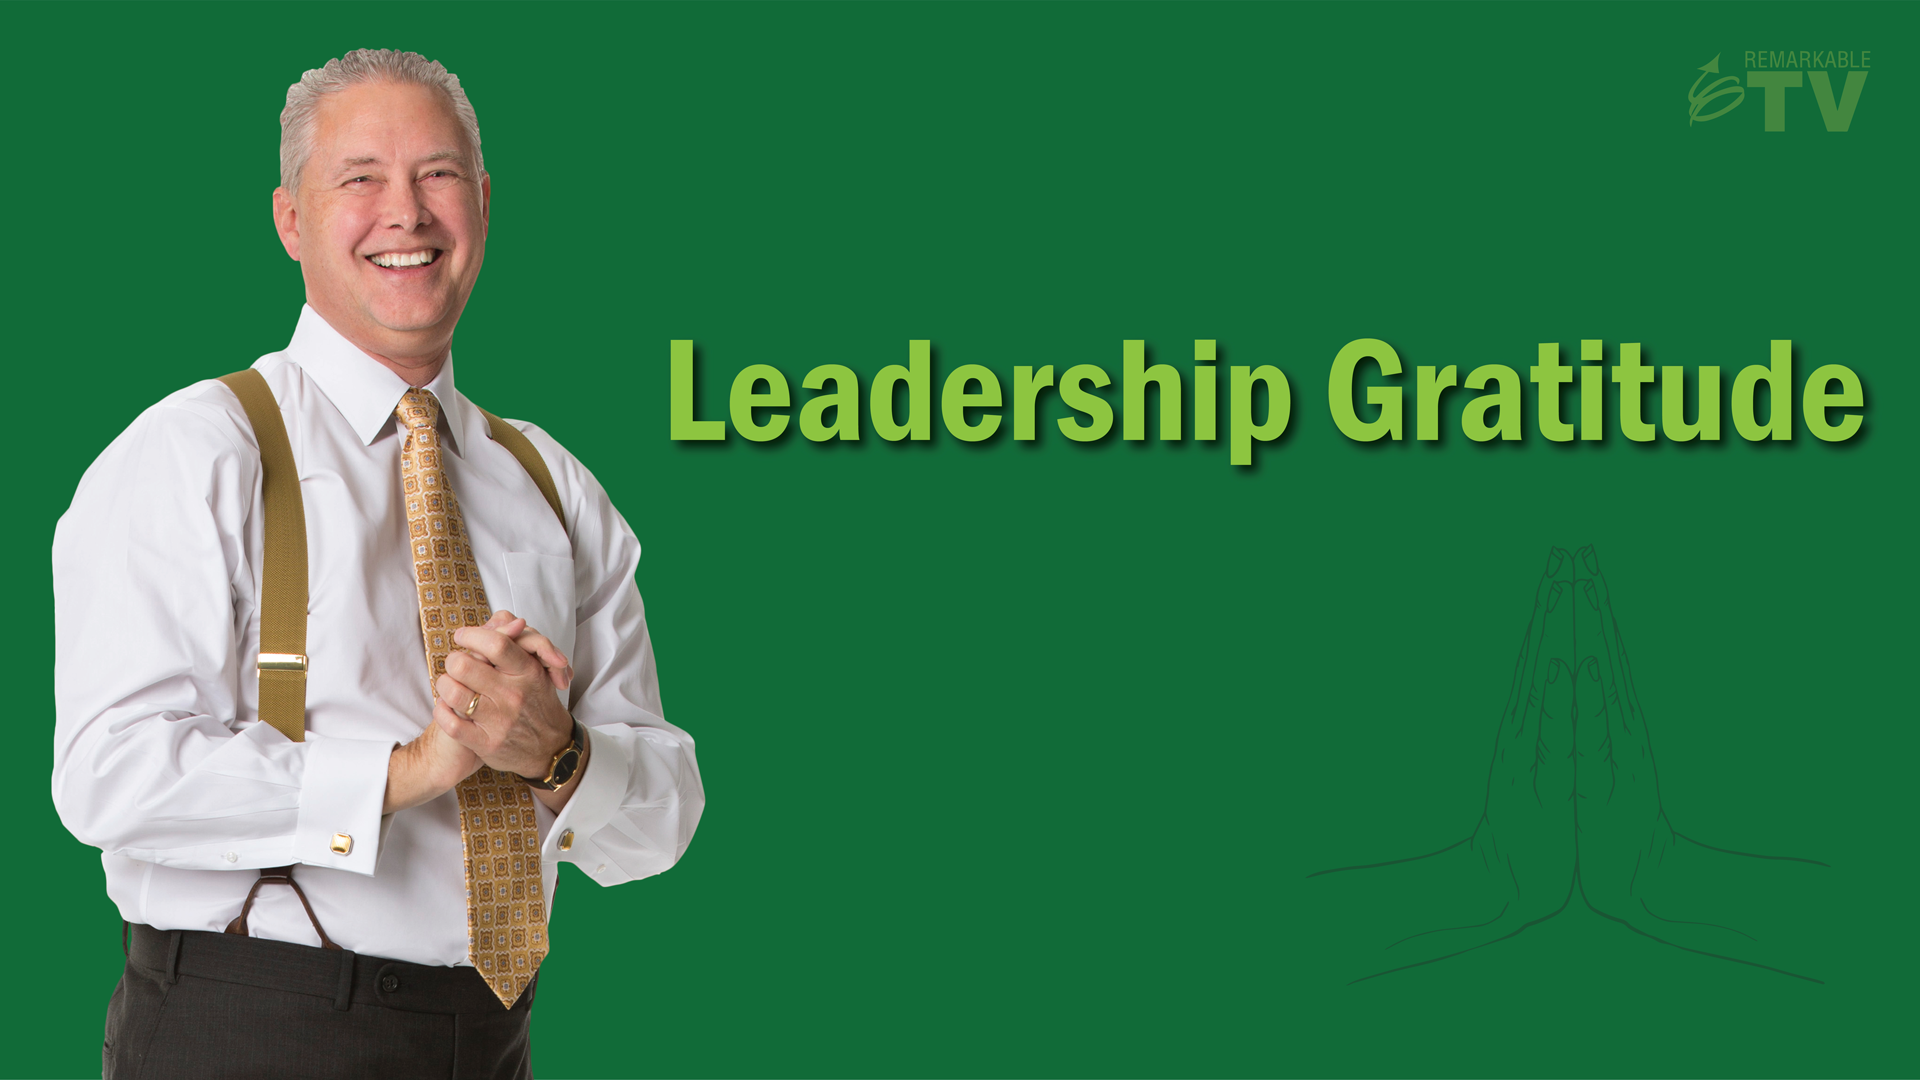 Leadership Gratitude - Remarkable TV with Kevin Eikenberry